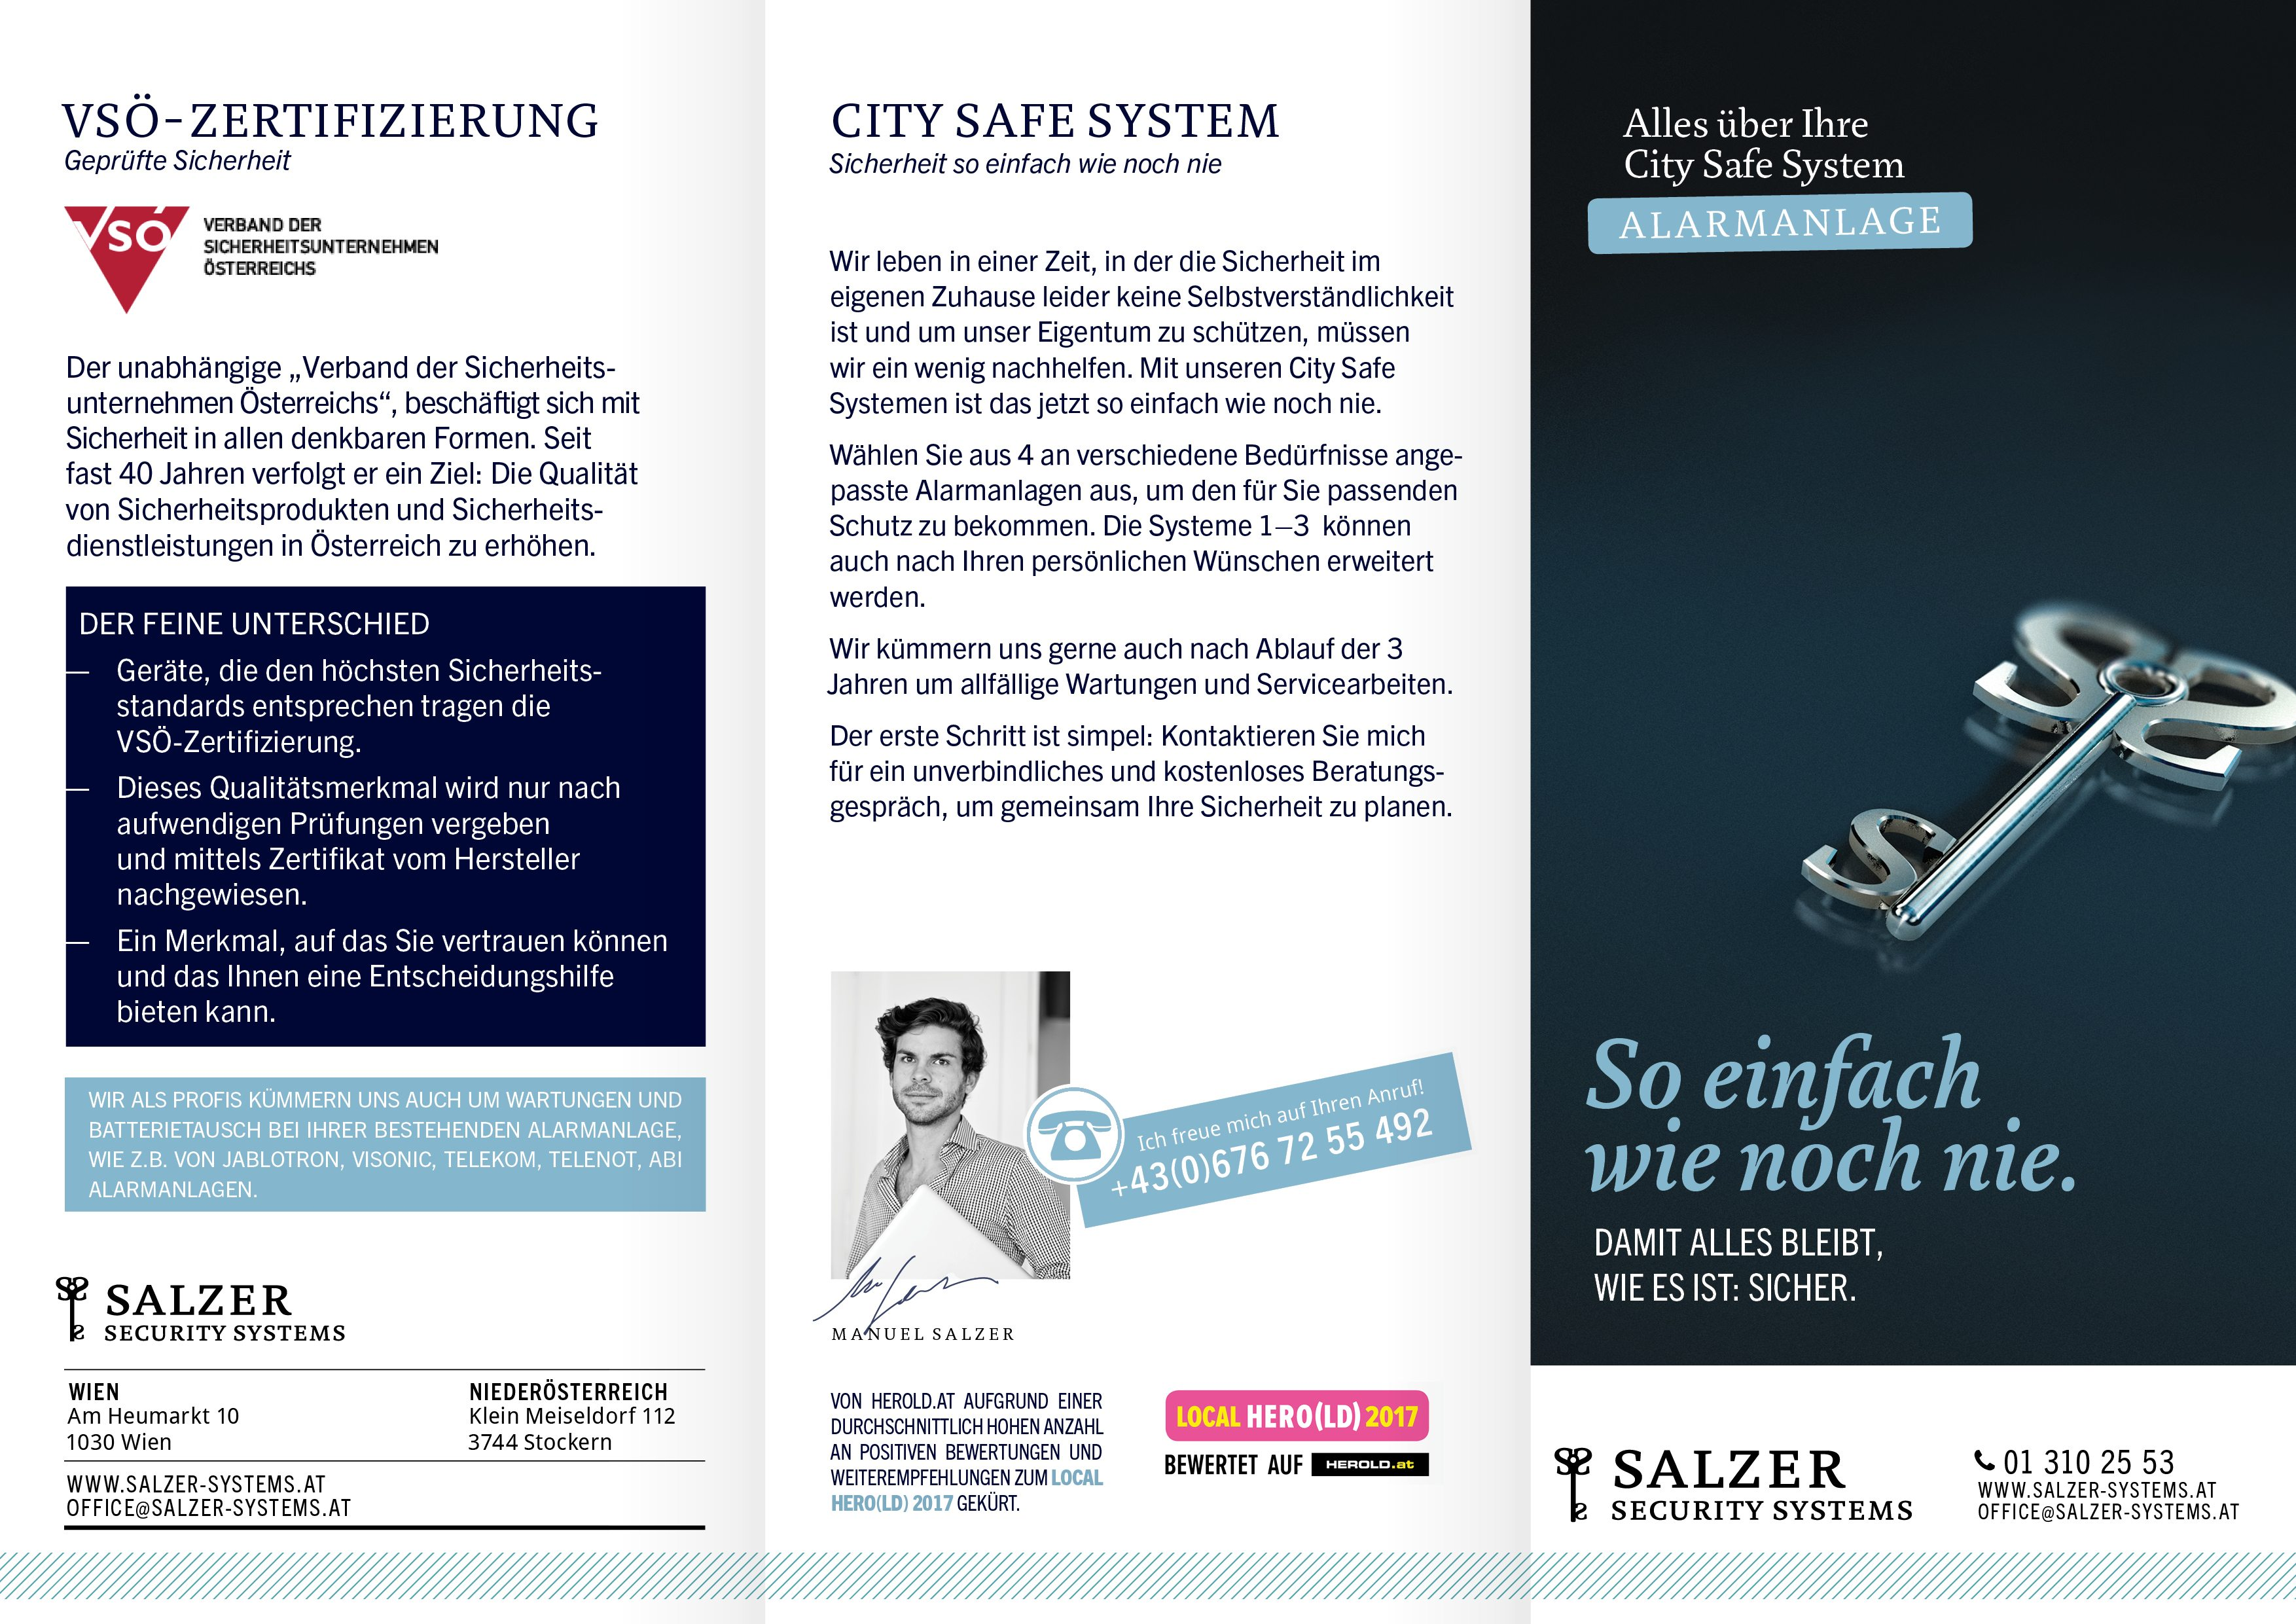 City Safe Systems Front